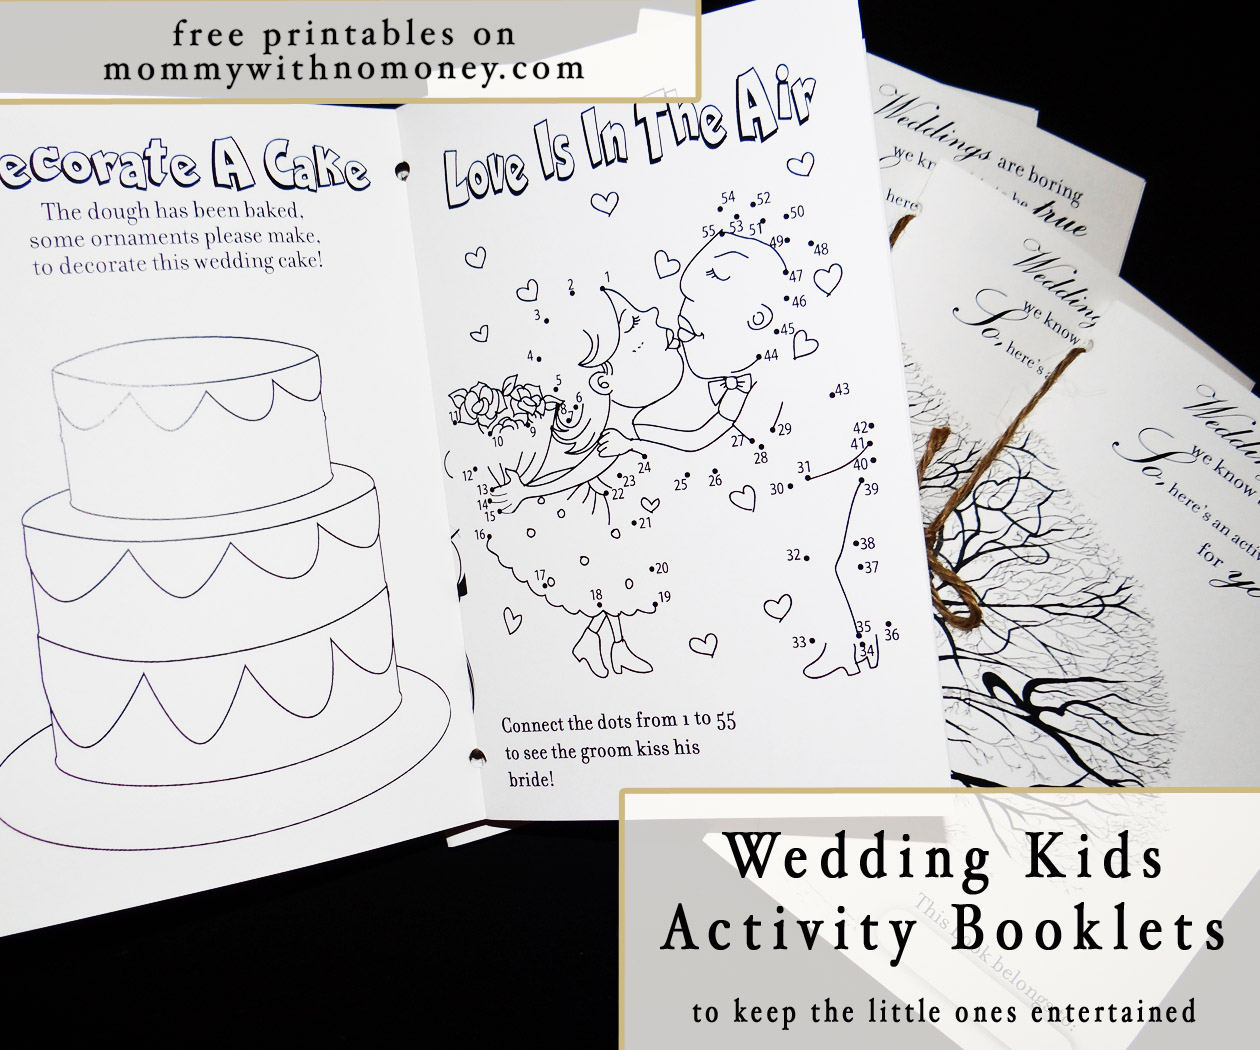 wedding-kids-activity-books-pinterest-image